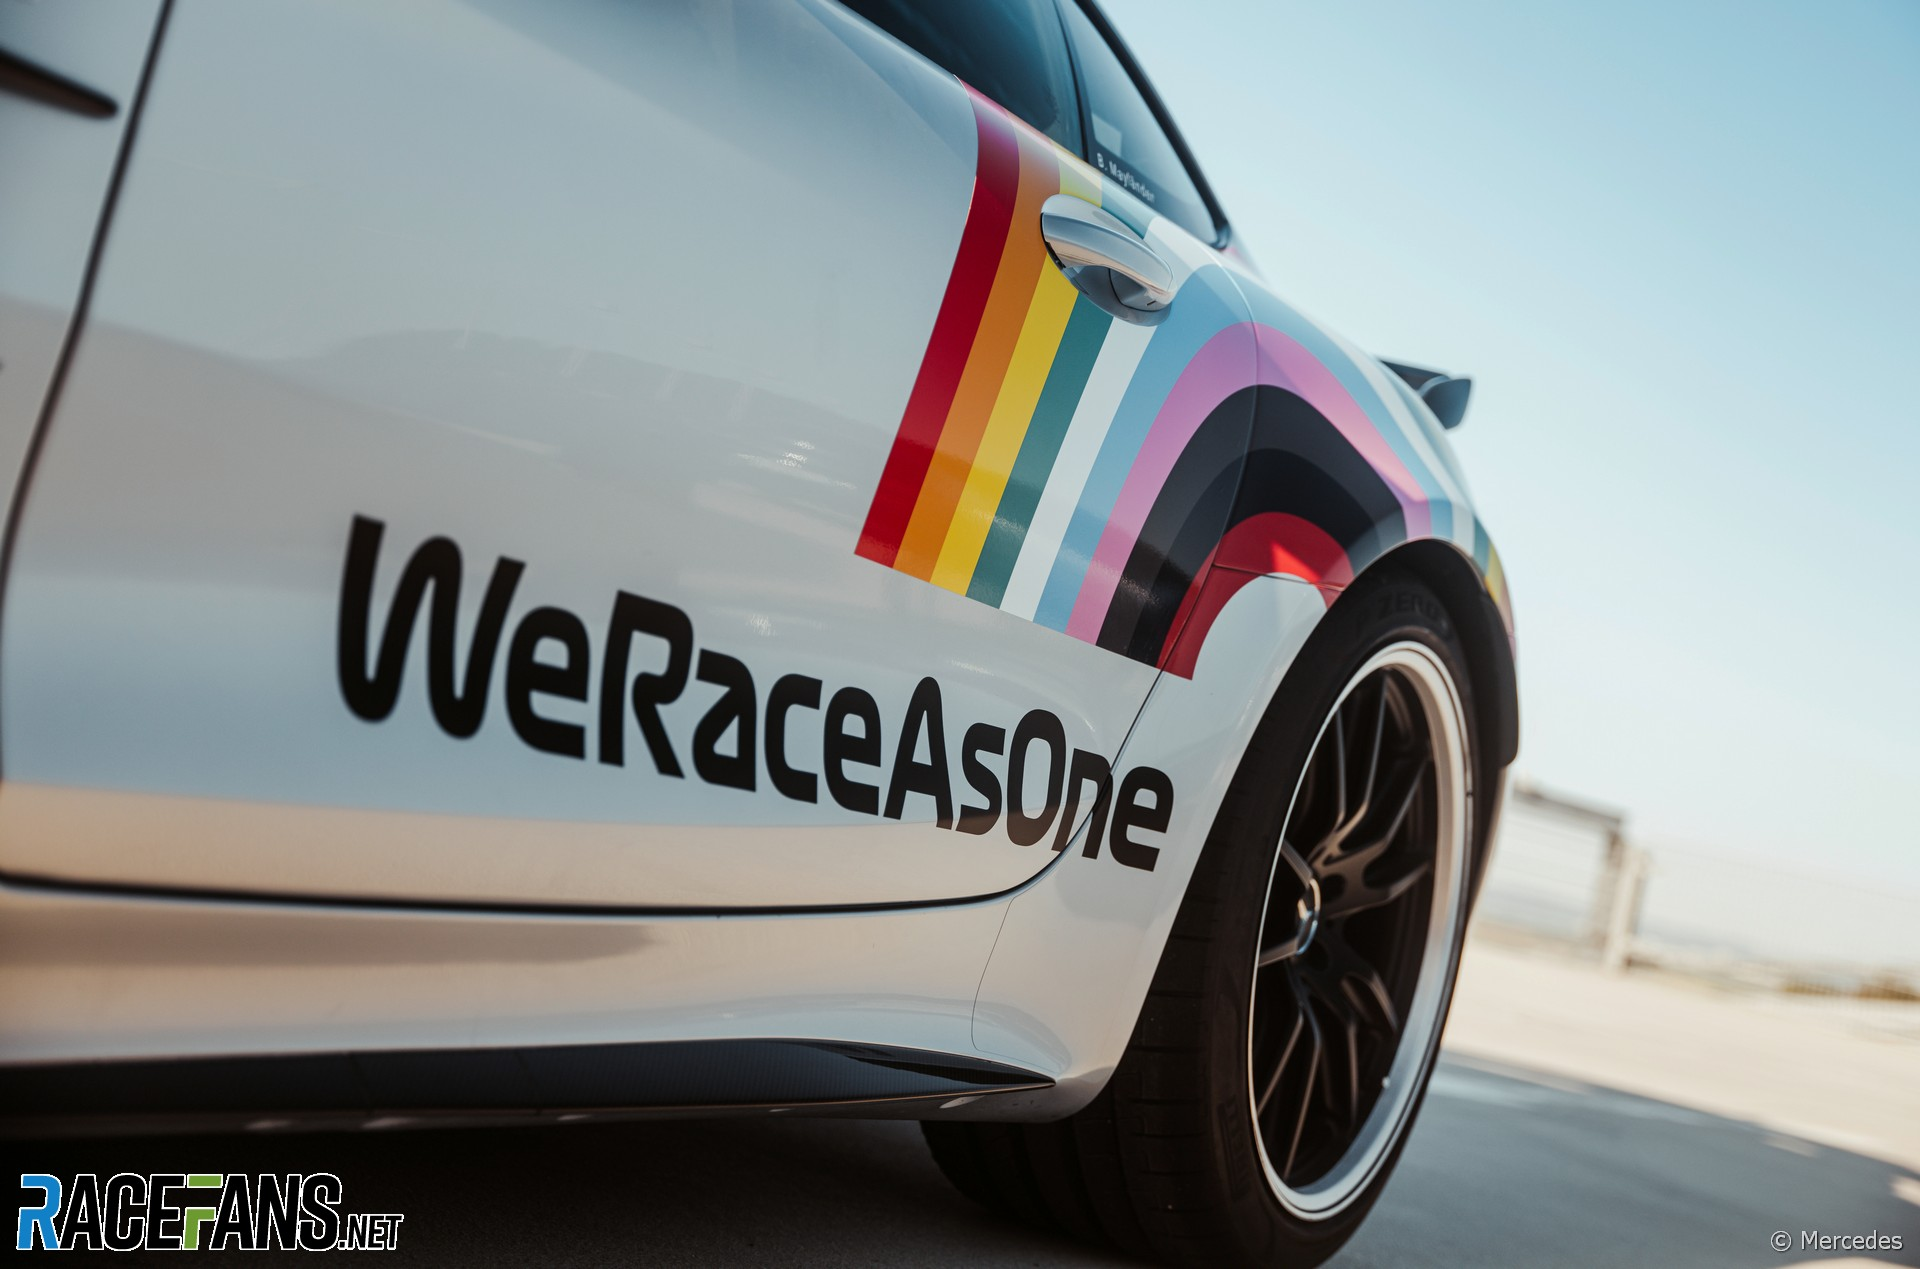 Mercedes-AMG GT R Official FIA F1 Safety Car with new WeRaceAsOne livery, 2020